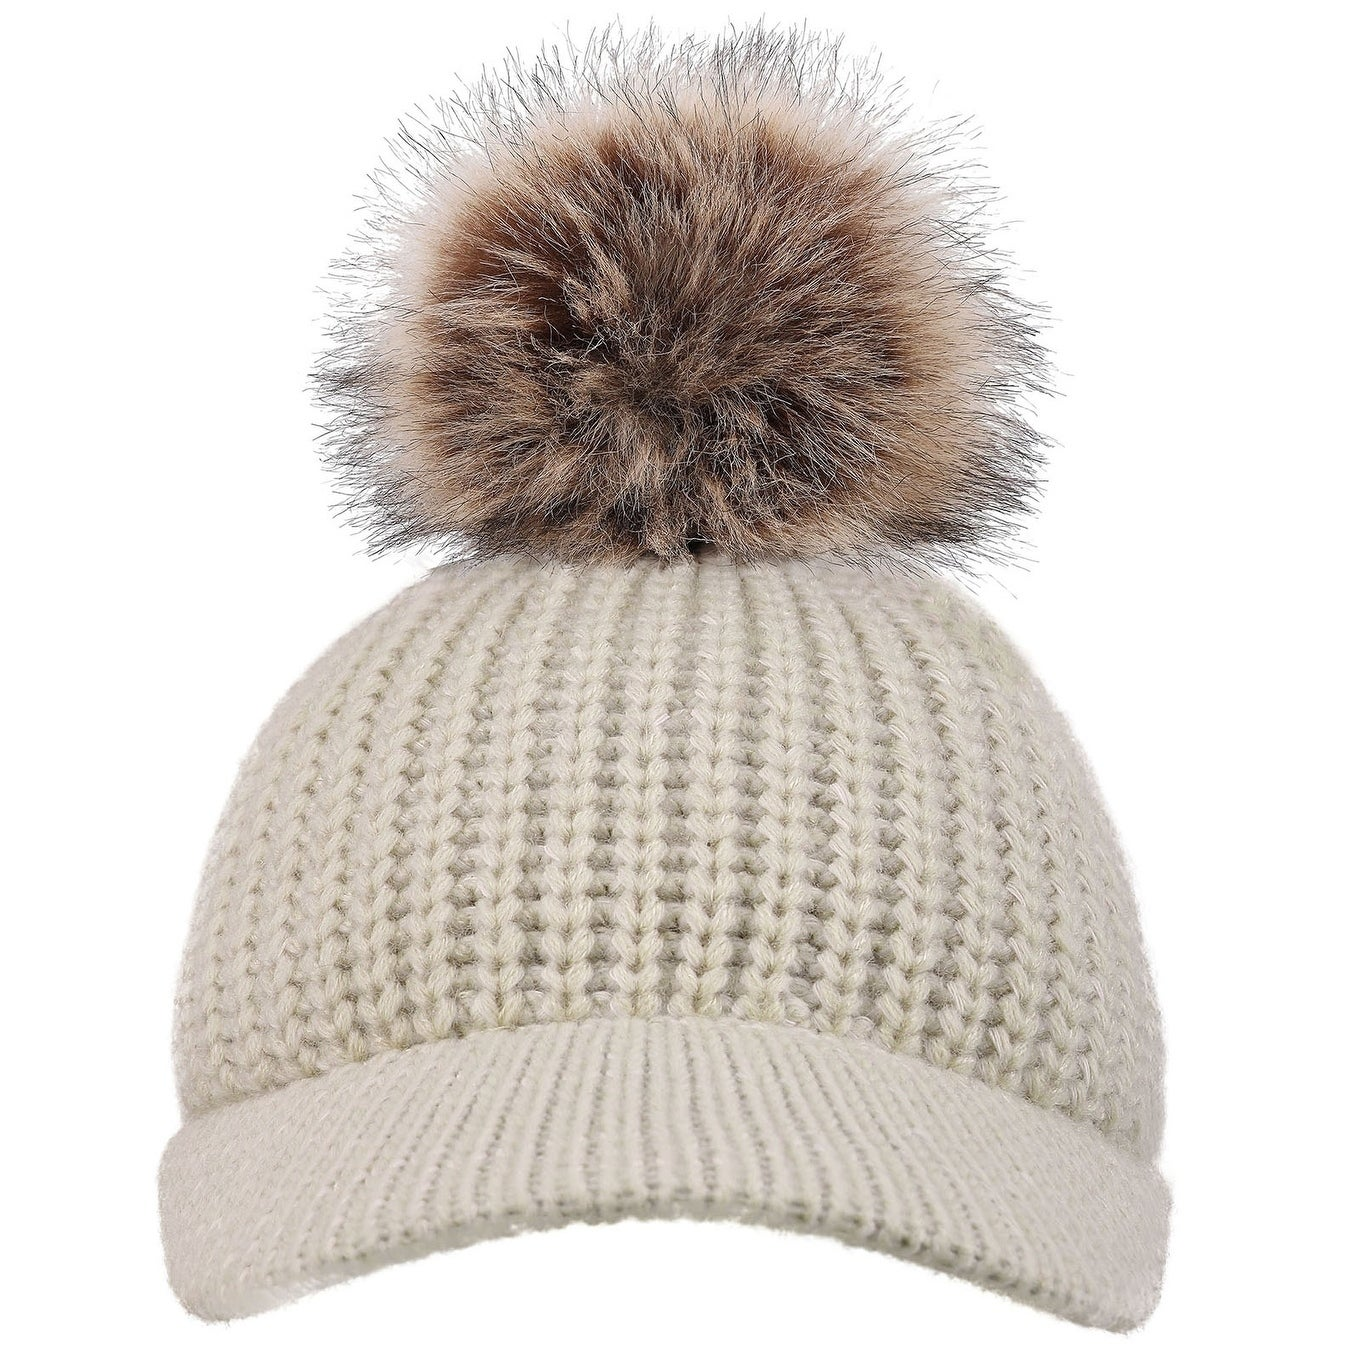 59cb4a2e55df7e Shop Arctic Paw Cable Knit Beanie with Faux Fur Pompom and Brim Shade - On  Sale - Free Shipping On Orders Over $45 - Overstock - 17638882